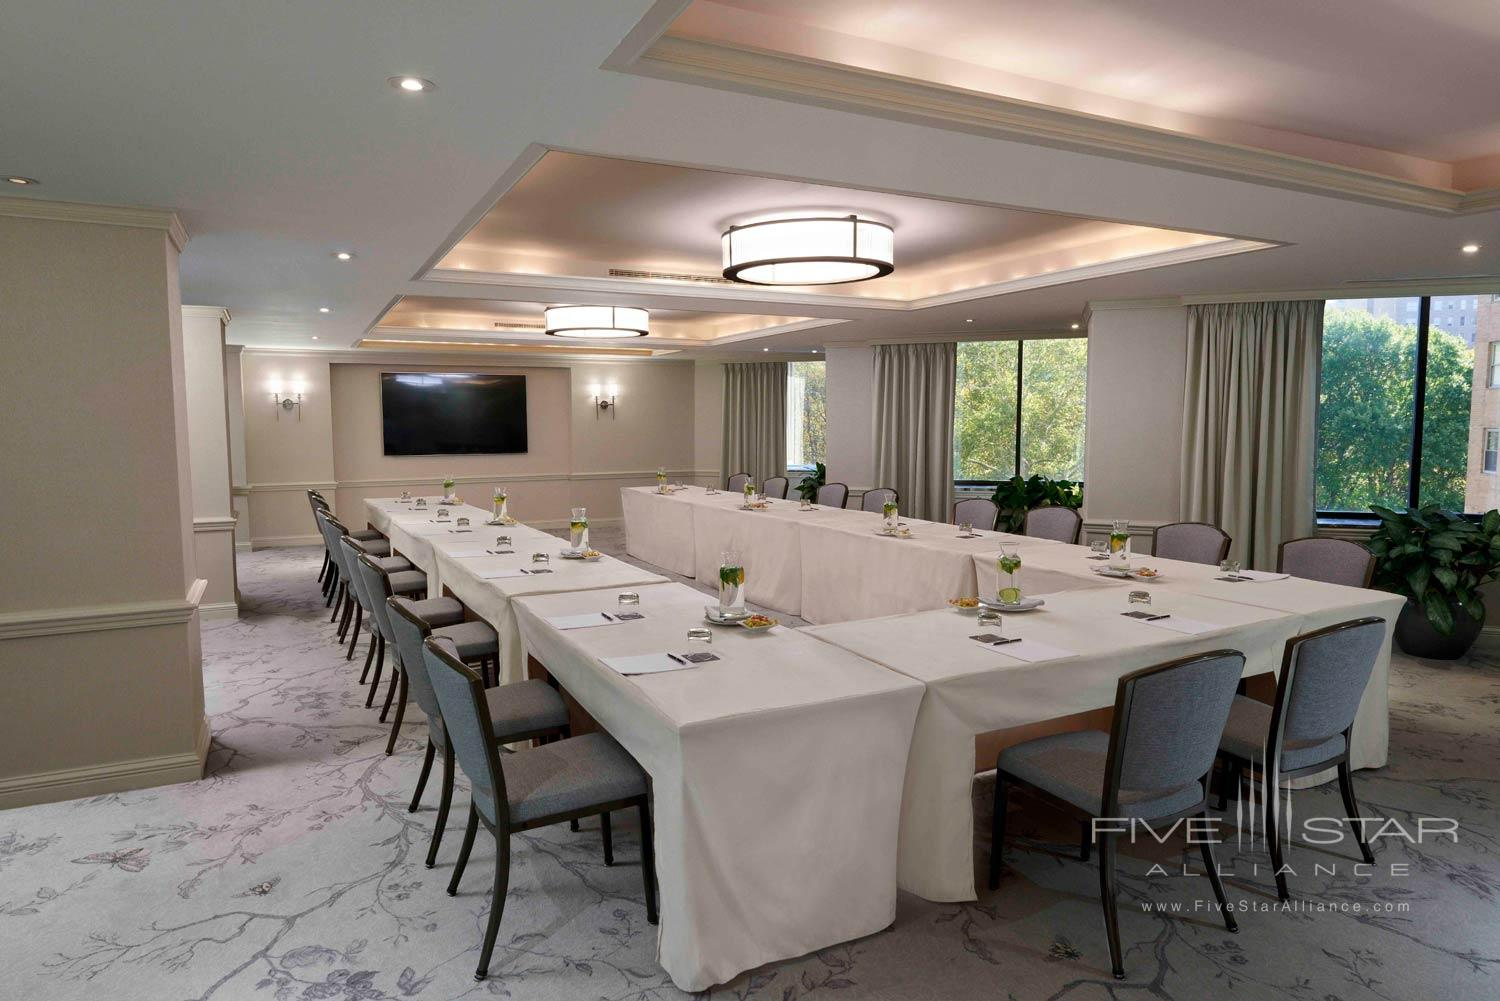 Meetings at Rittenhouse Hotel, Philadelphia, PA